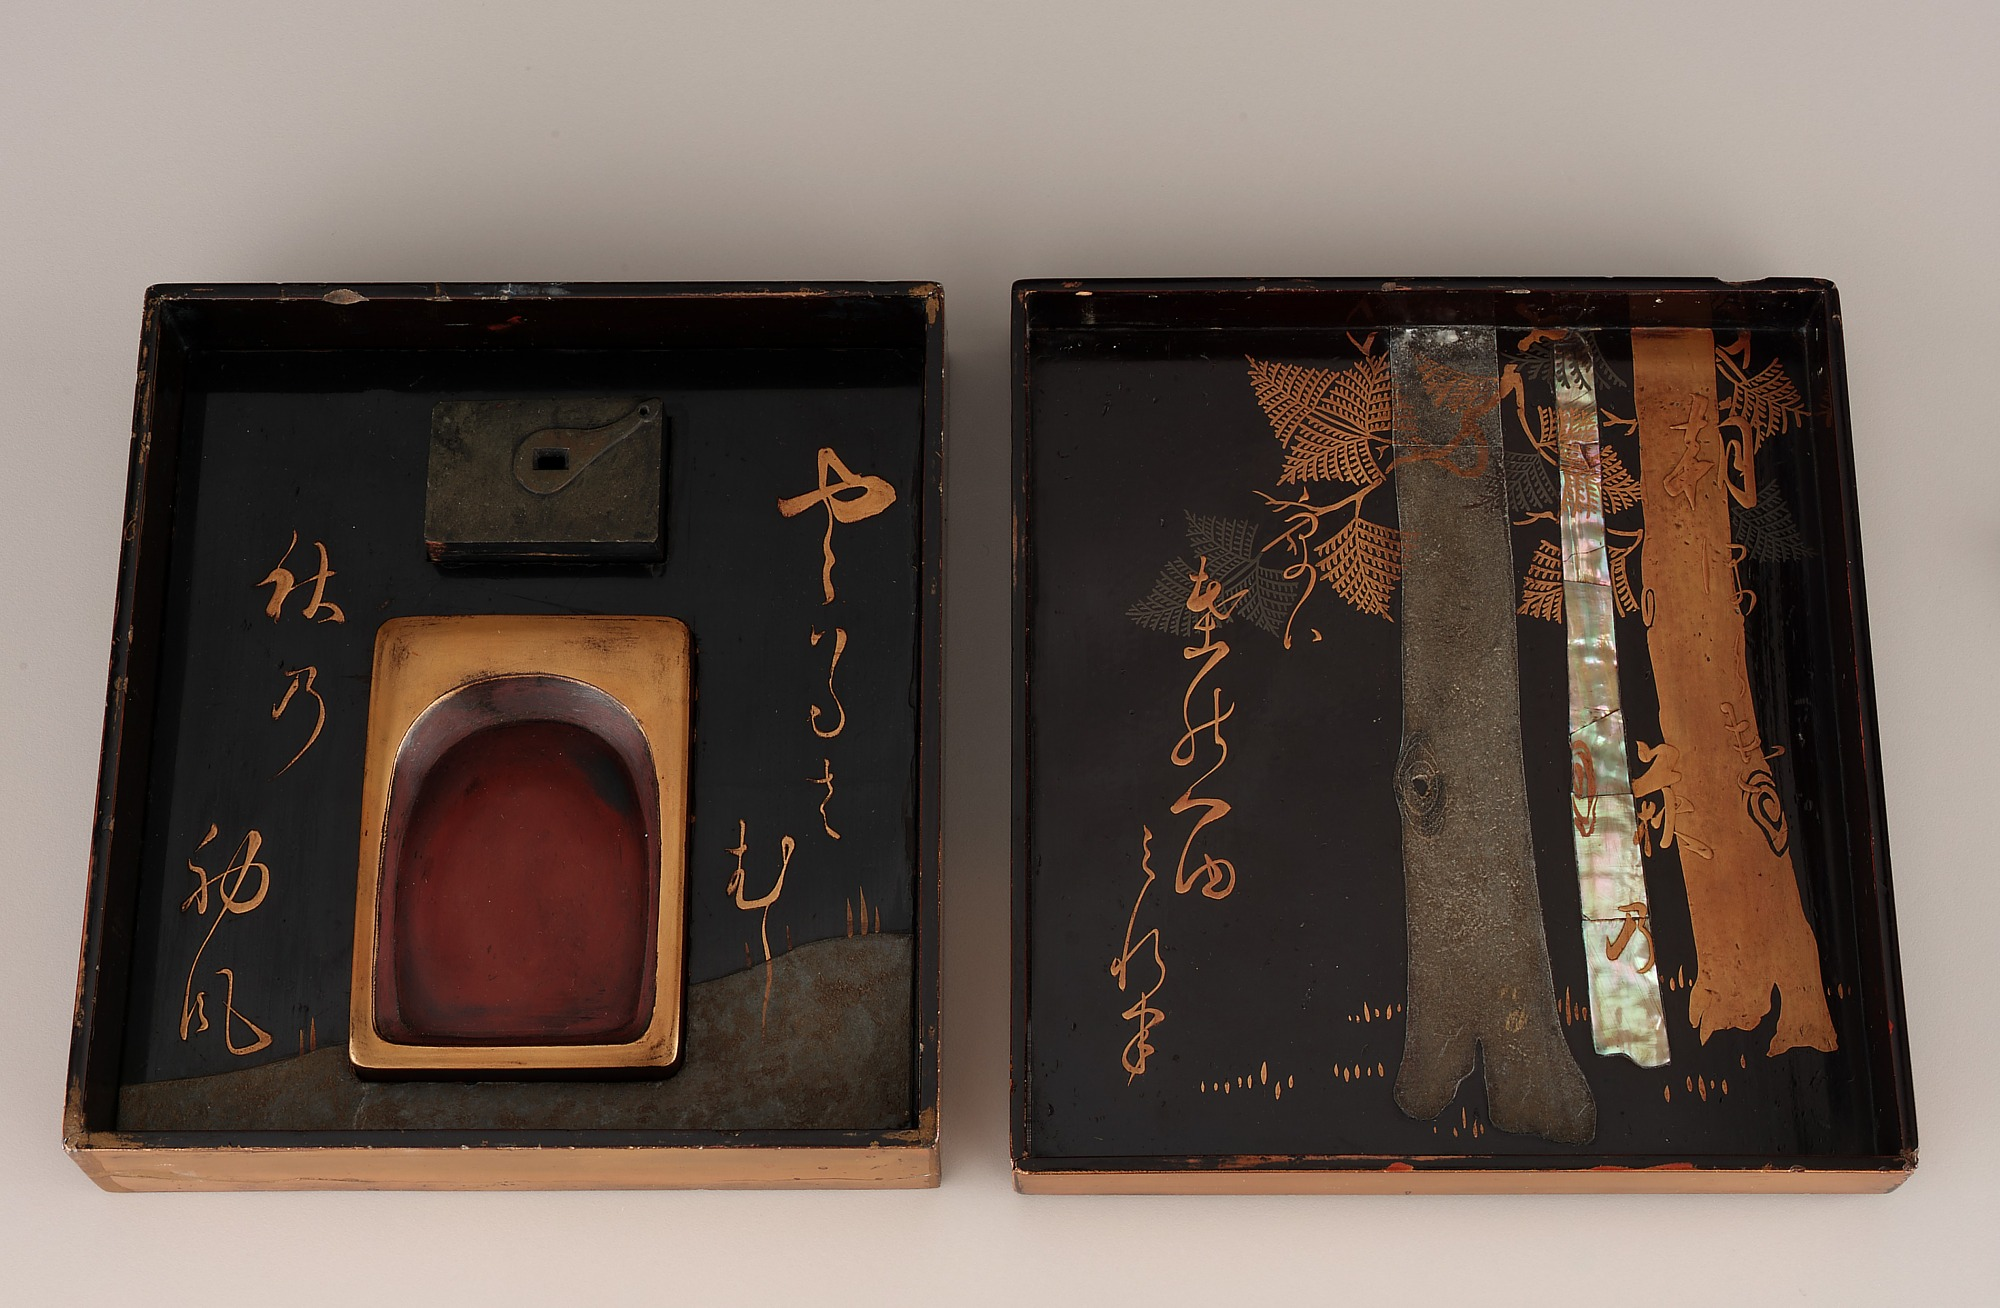 interior: Writing box containing ink-stone and water holder